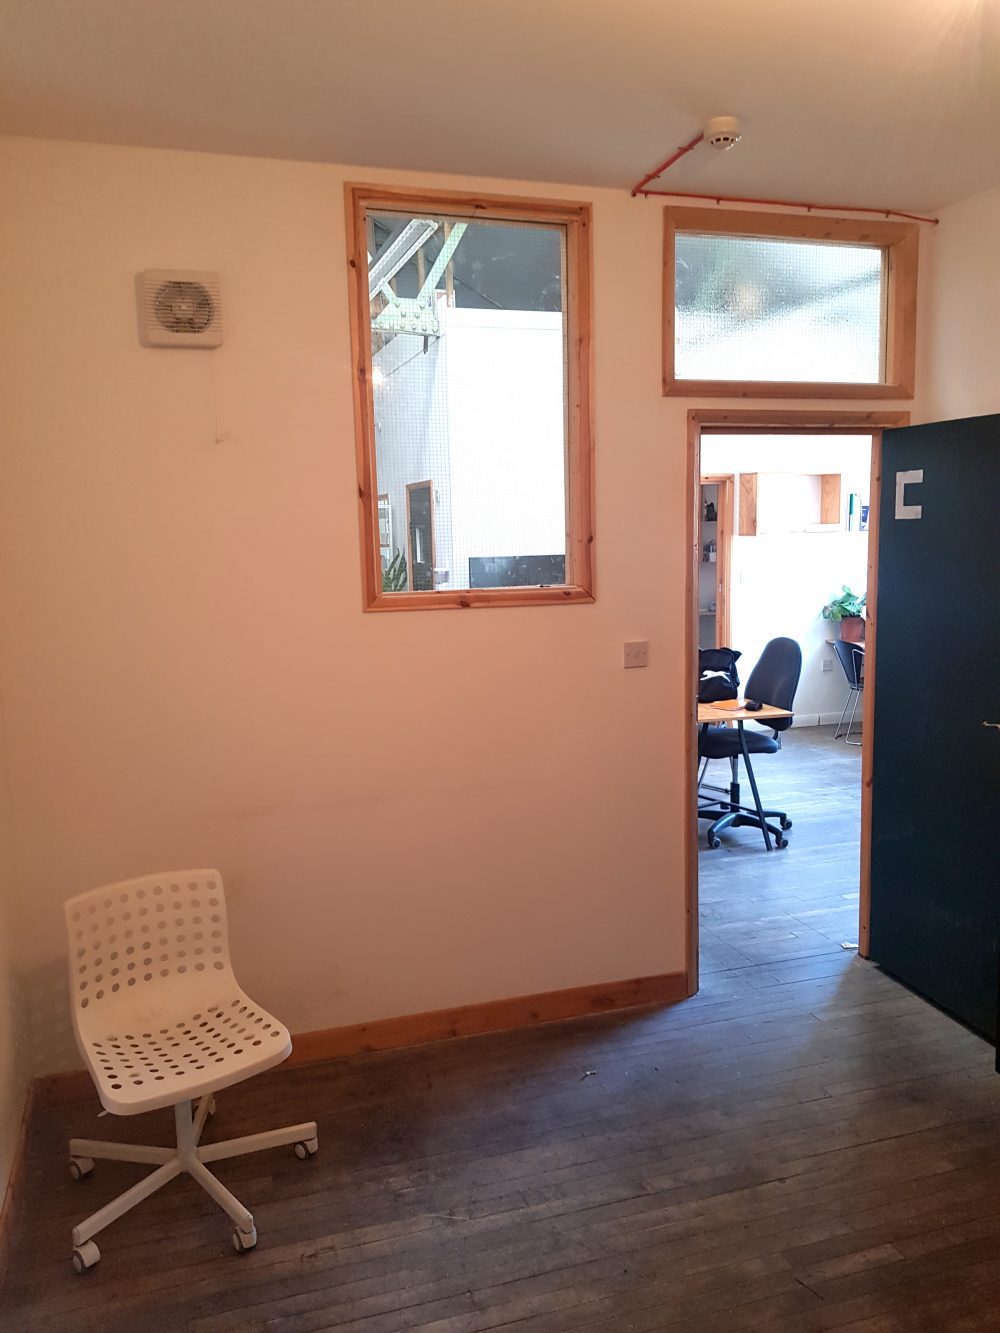 Light indurstrial unit to rent in N15 Markfield rd Gaunson House Studio B and C PIc3